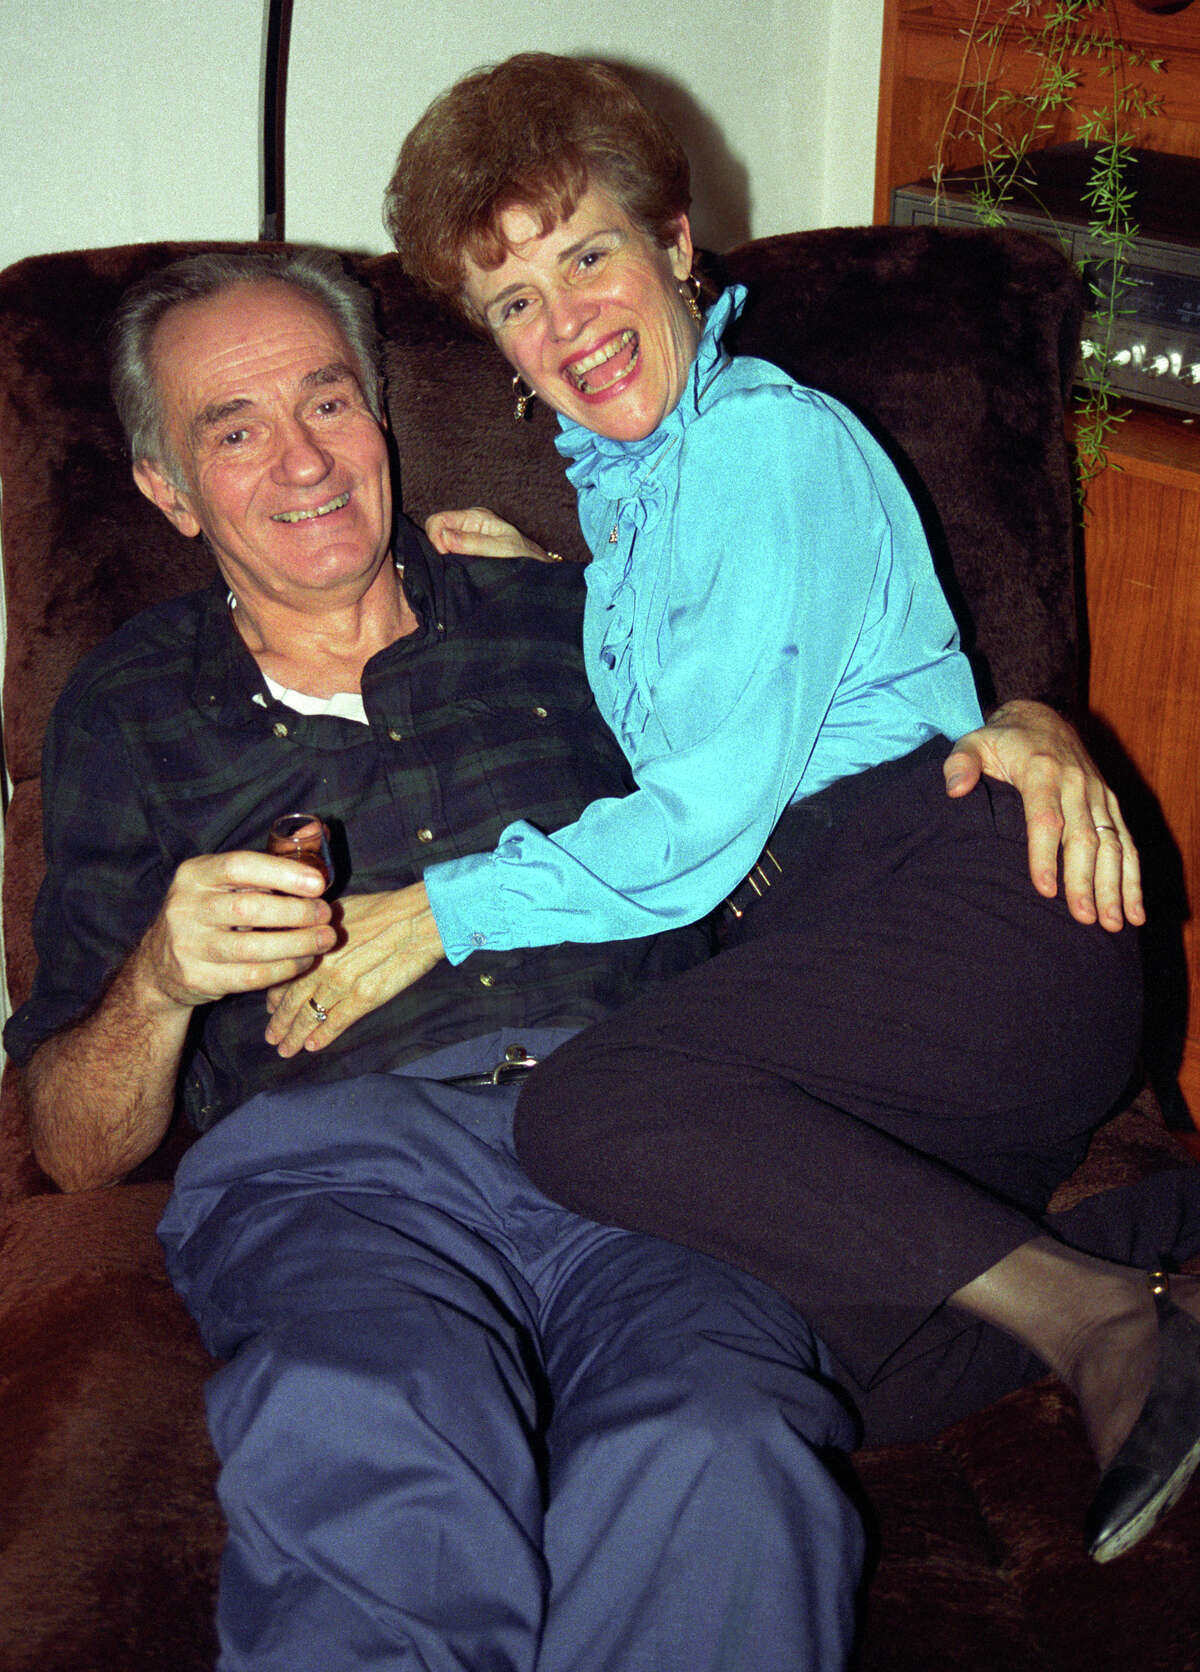 James D. Livingston and Sherry Penney died in their home in Sarasota, Florida from accidental carbon monoxide poisoning.